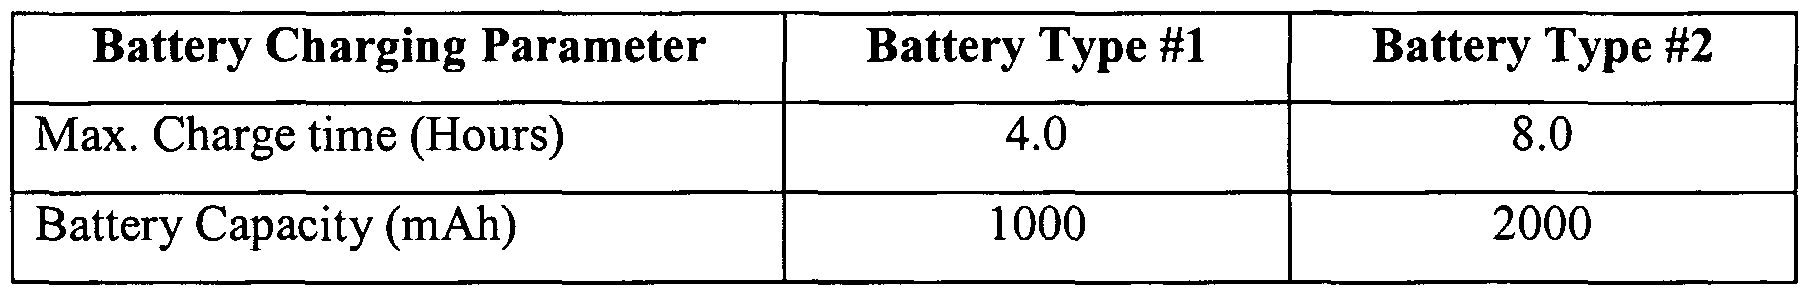 WO2005078556A1 - Battery charger for portable devices and